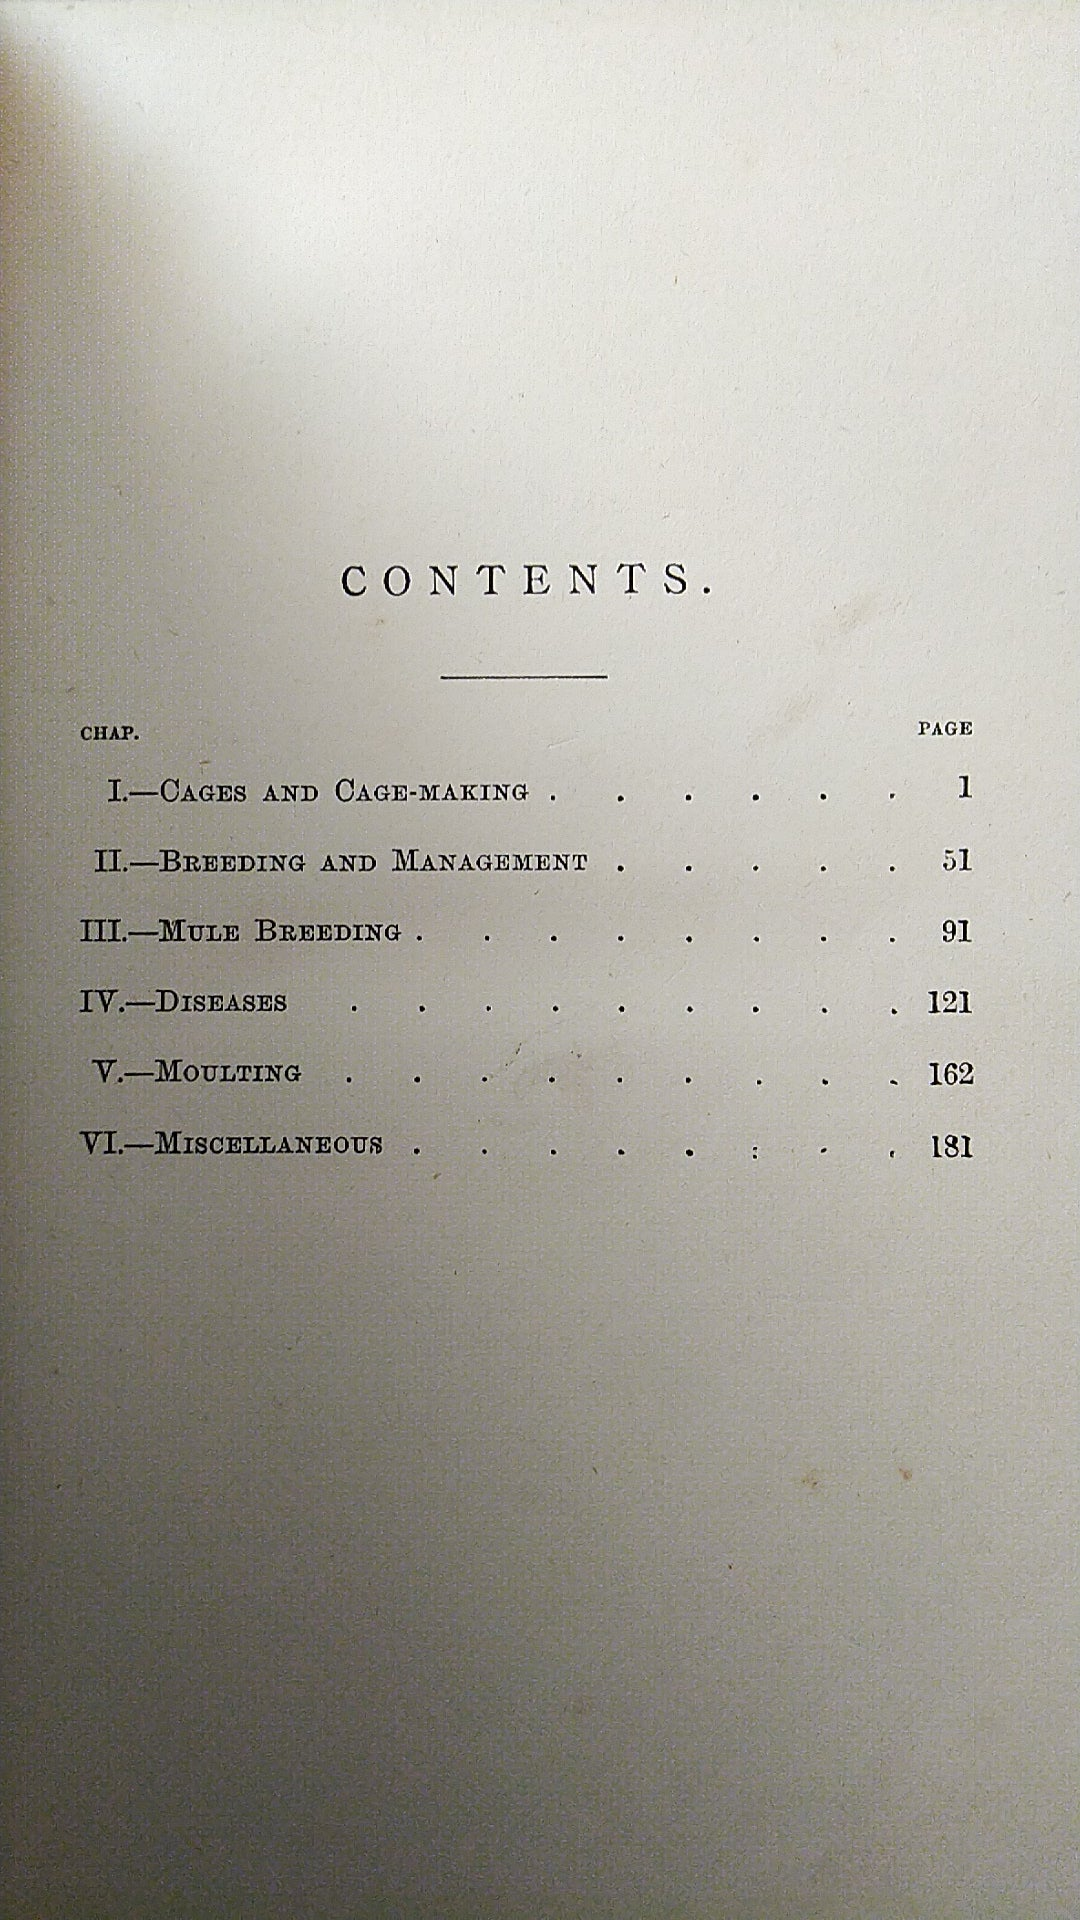 The Canary Book by R. Wallace third edition 1893 in two sections